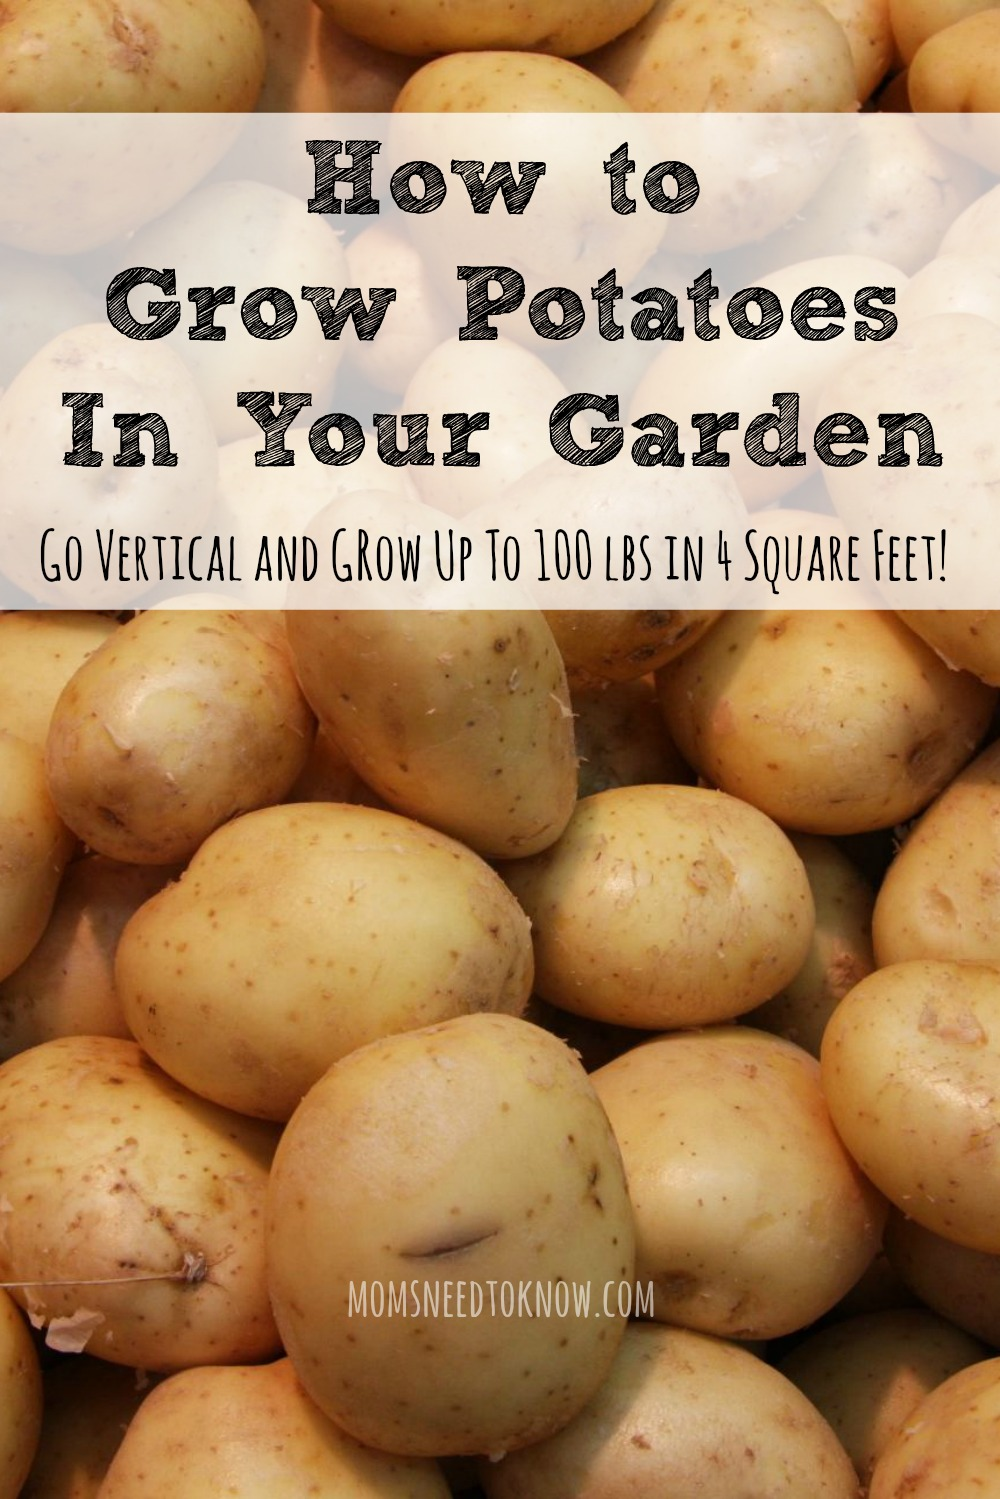 How To Grow Potatoes In Your Garden